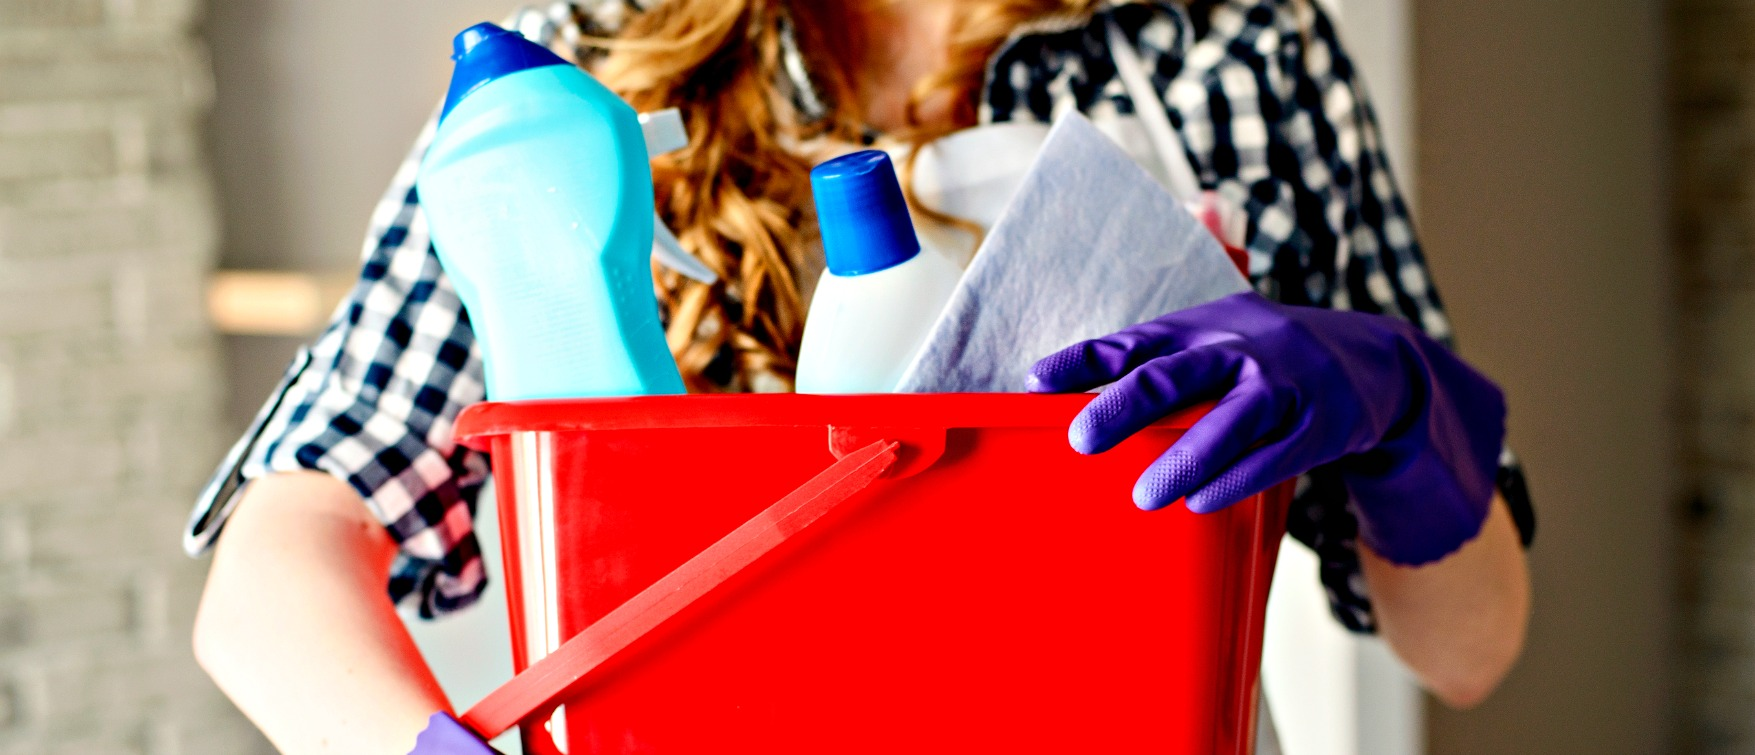 growing your cleaning business